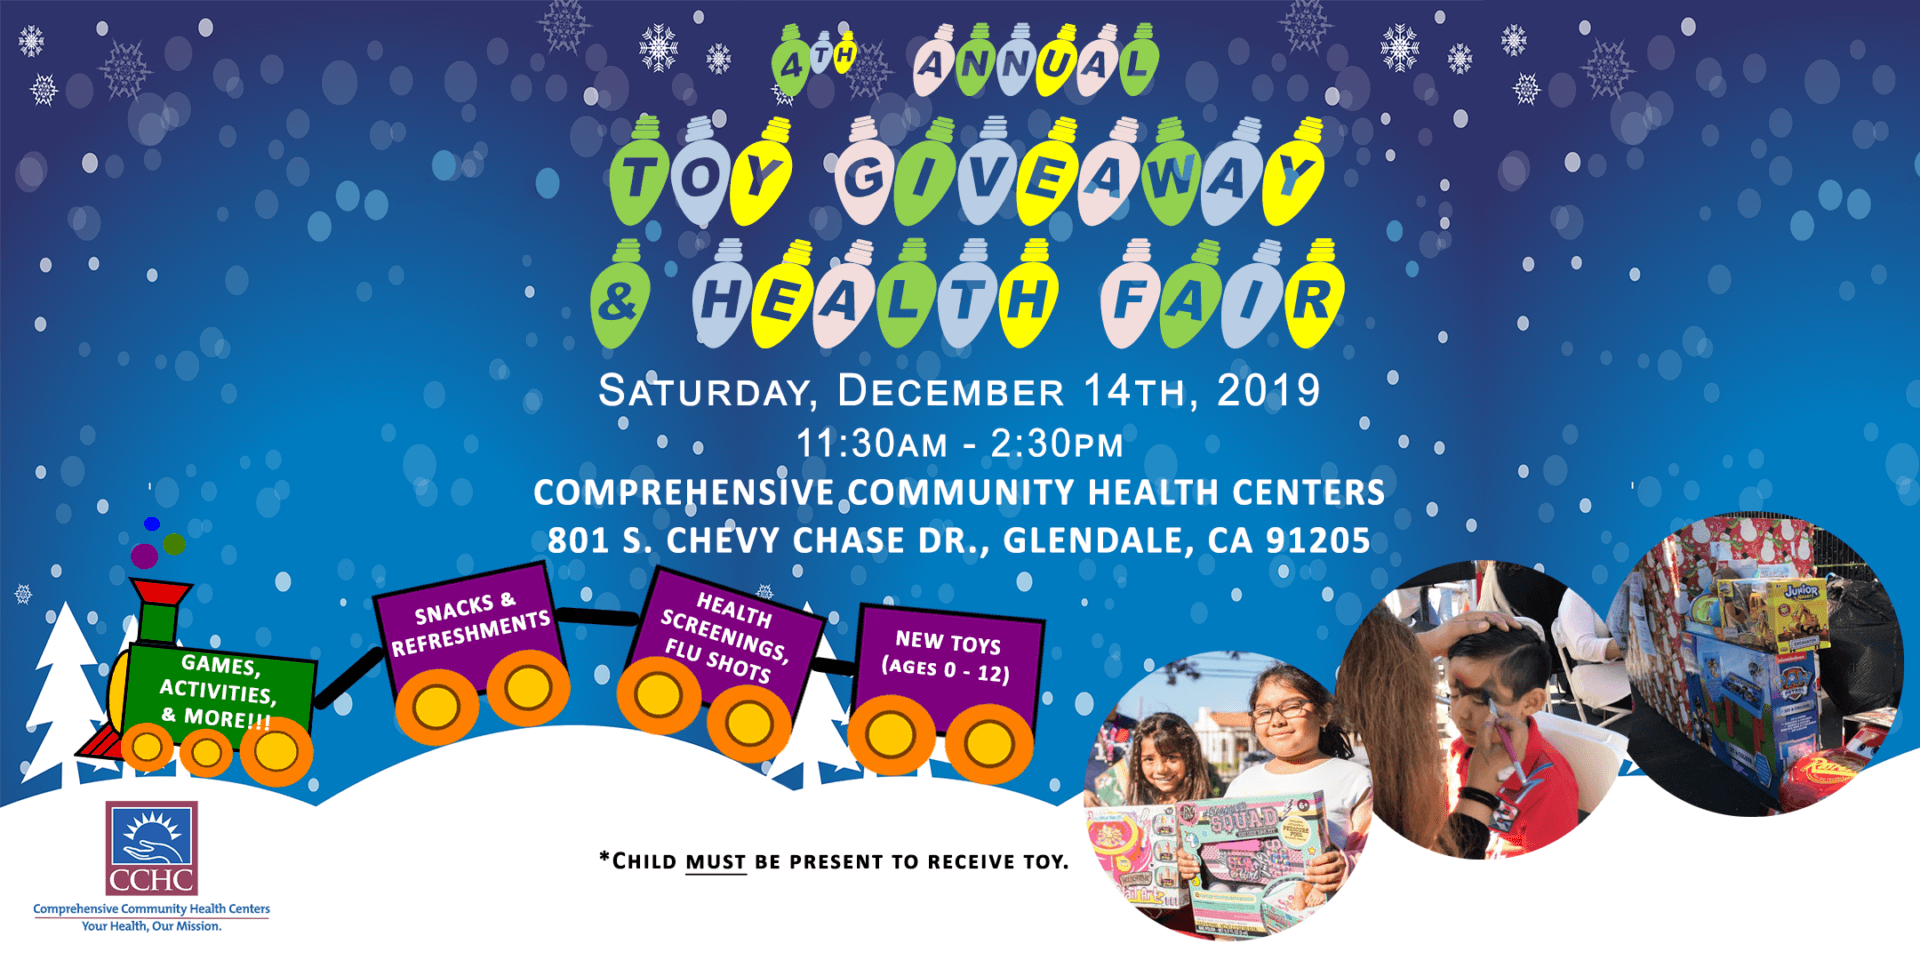 th annual toy giveaway health fair banner for social media